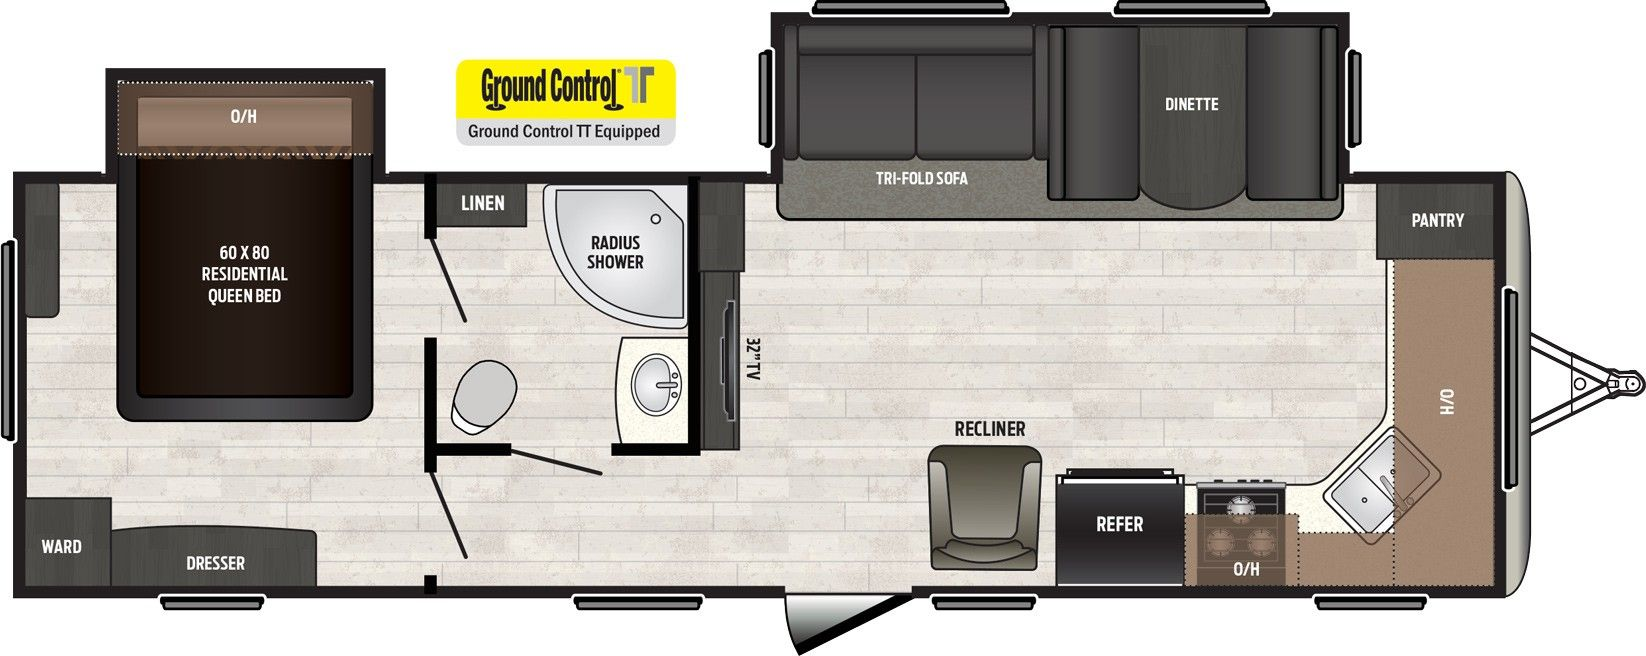 Pin By Natalie On Rv Show Camping World Rv Sales New Travel